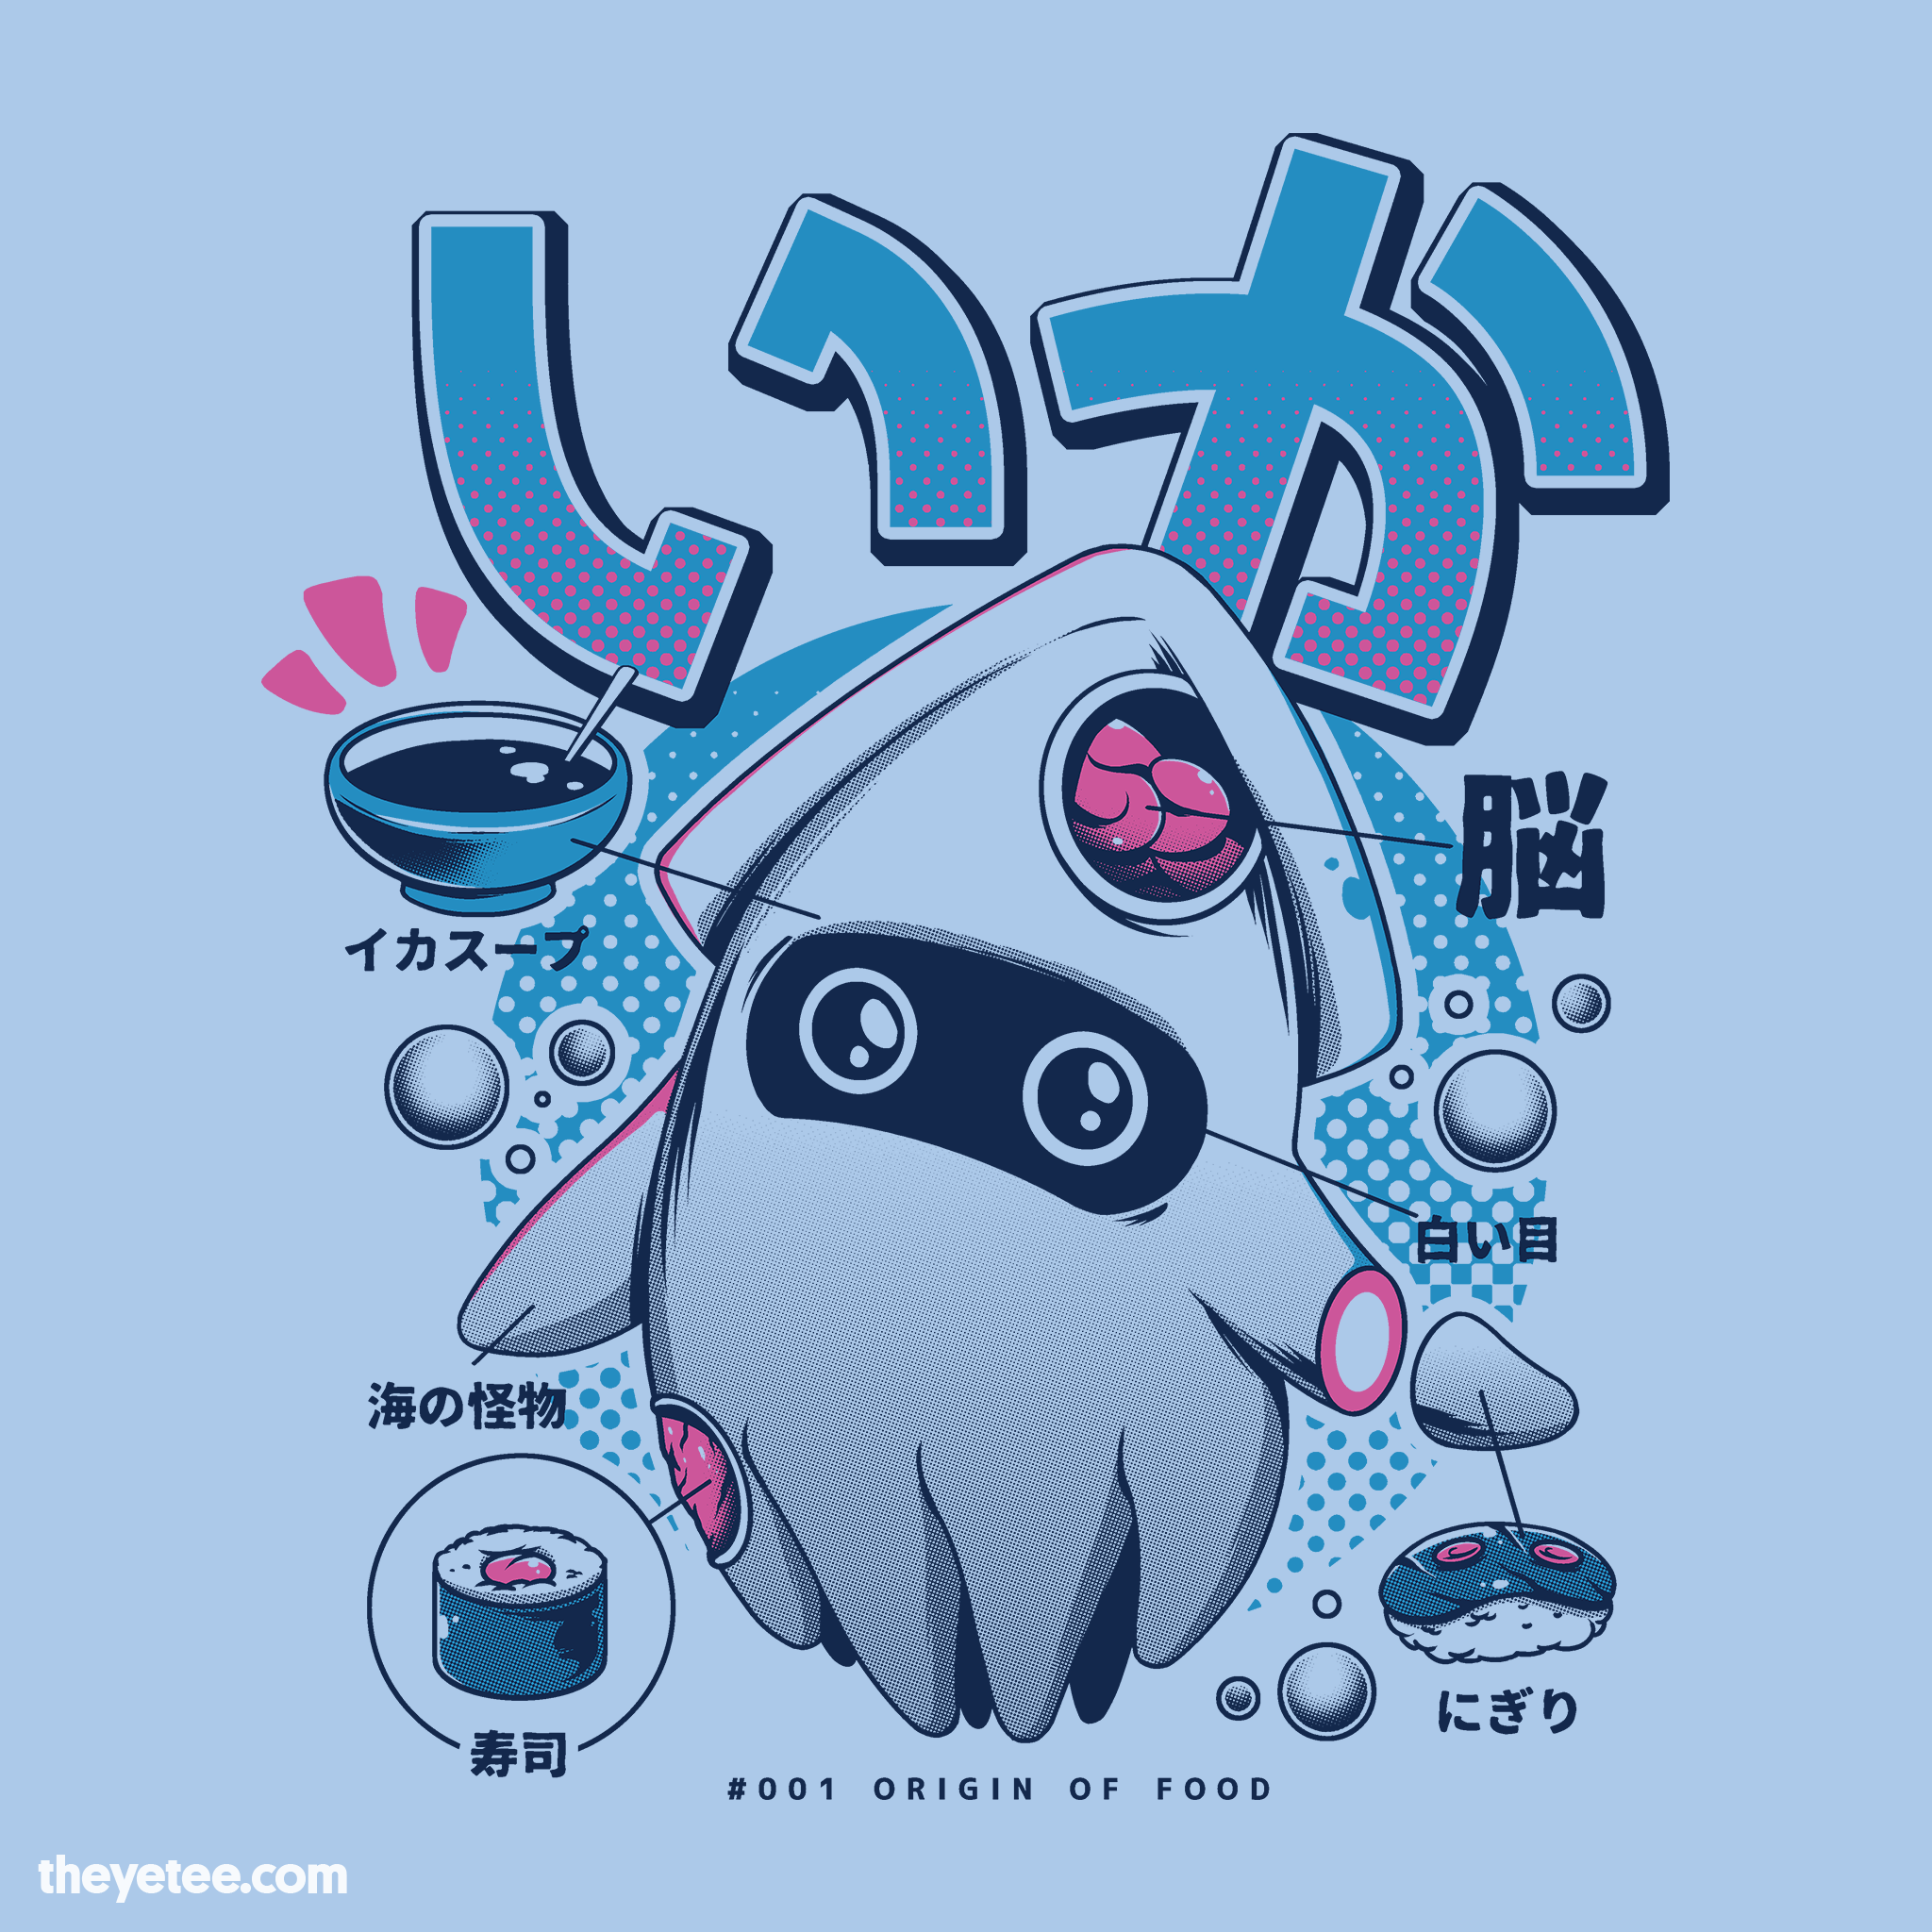 Squid Food T Shirt Squid Recipes Day Of The Shirt Squid Limit my search to r/theyetee.com. pinterest